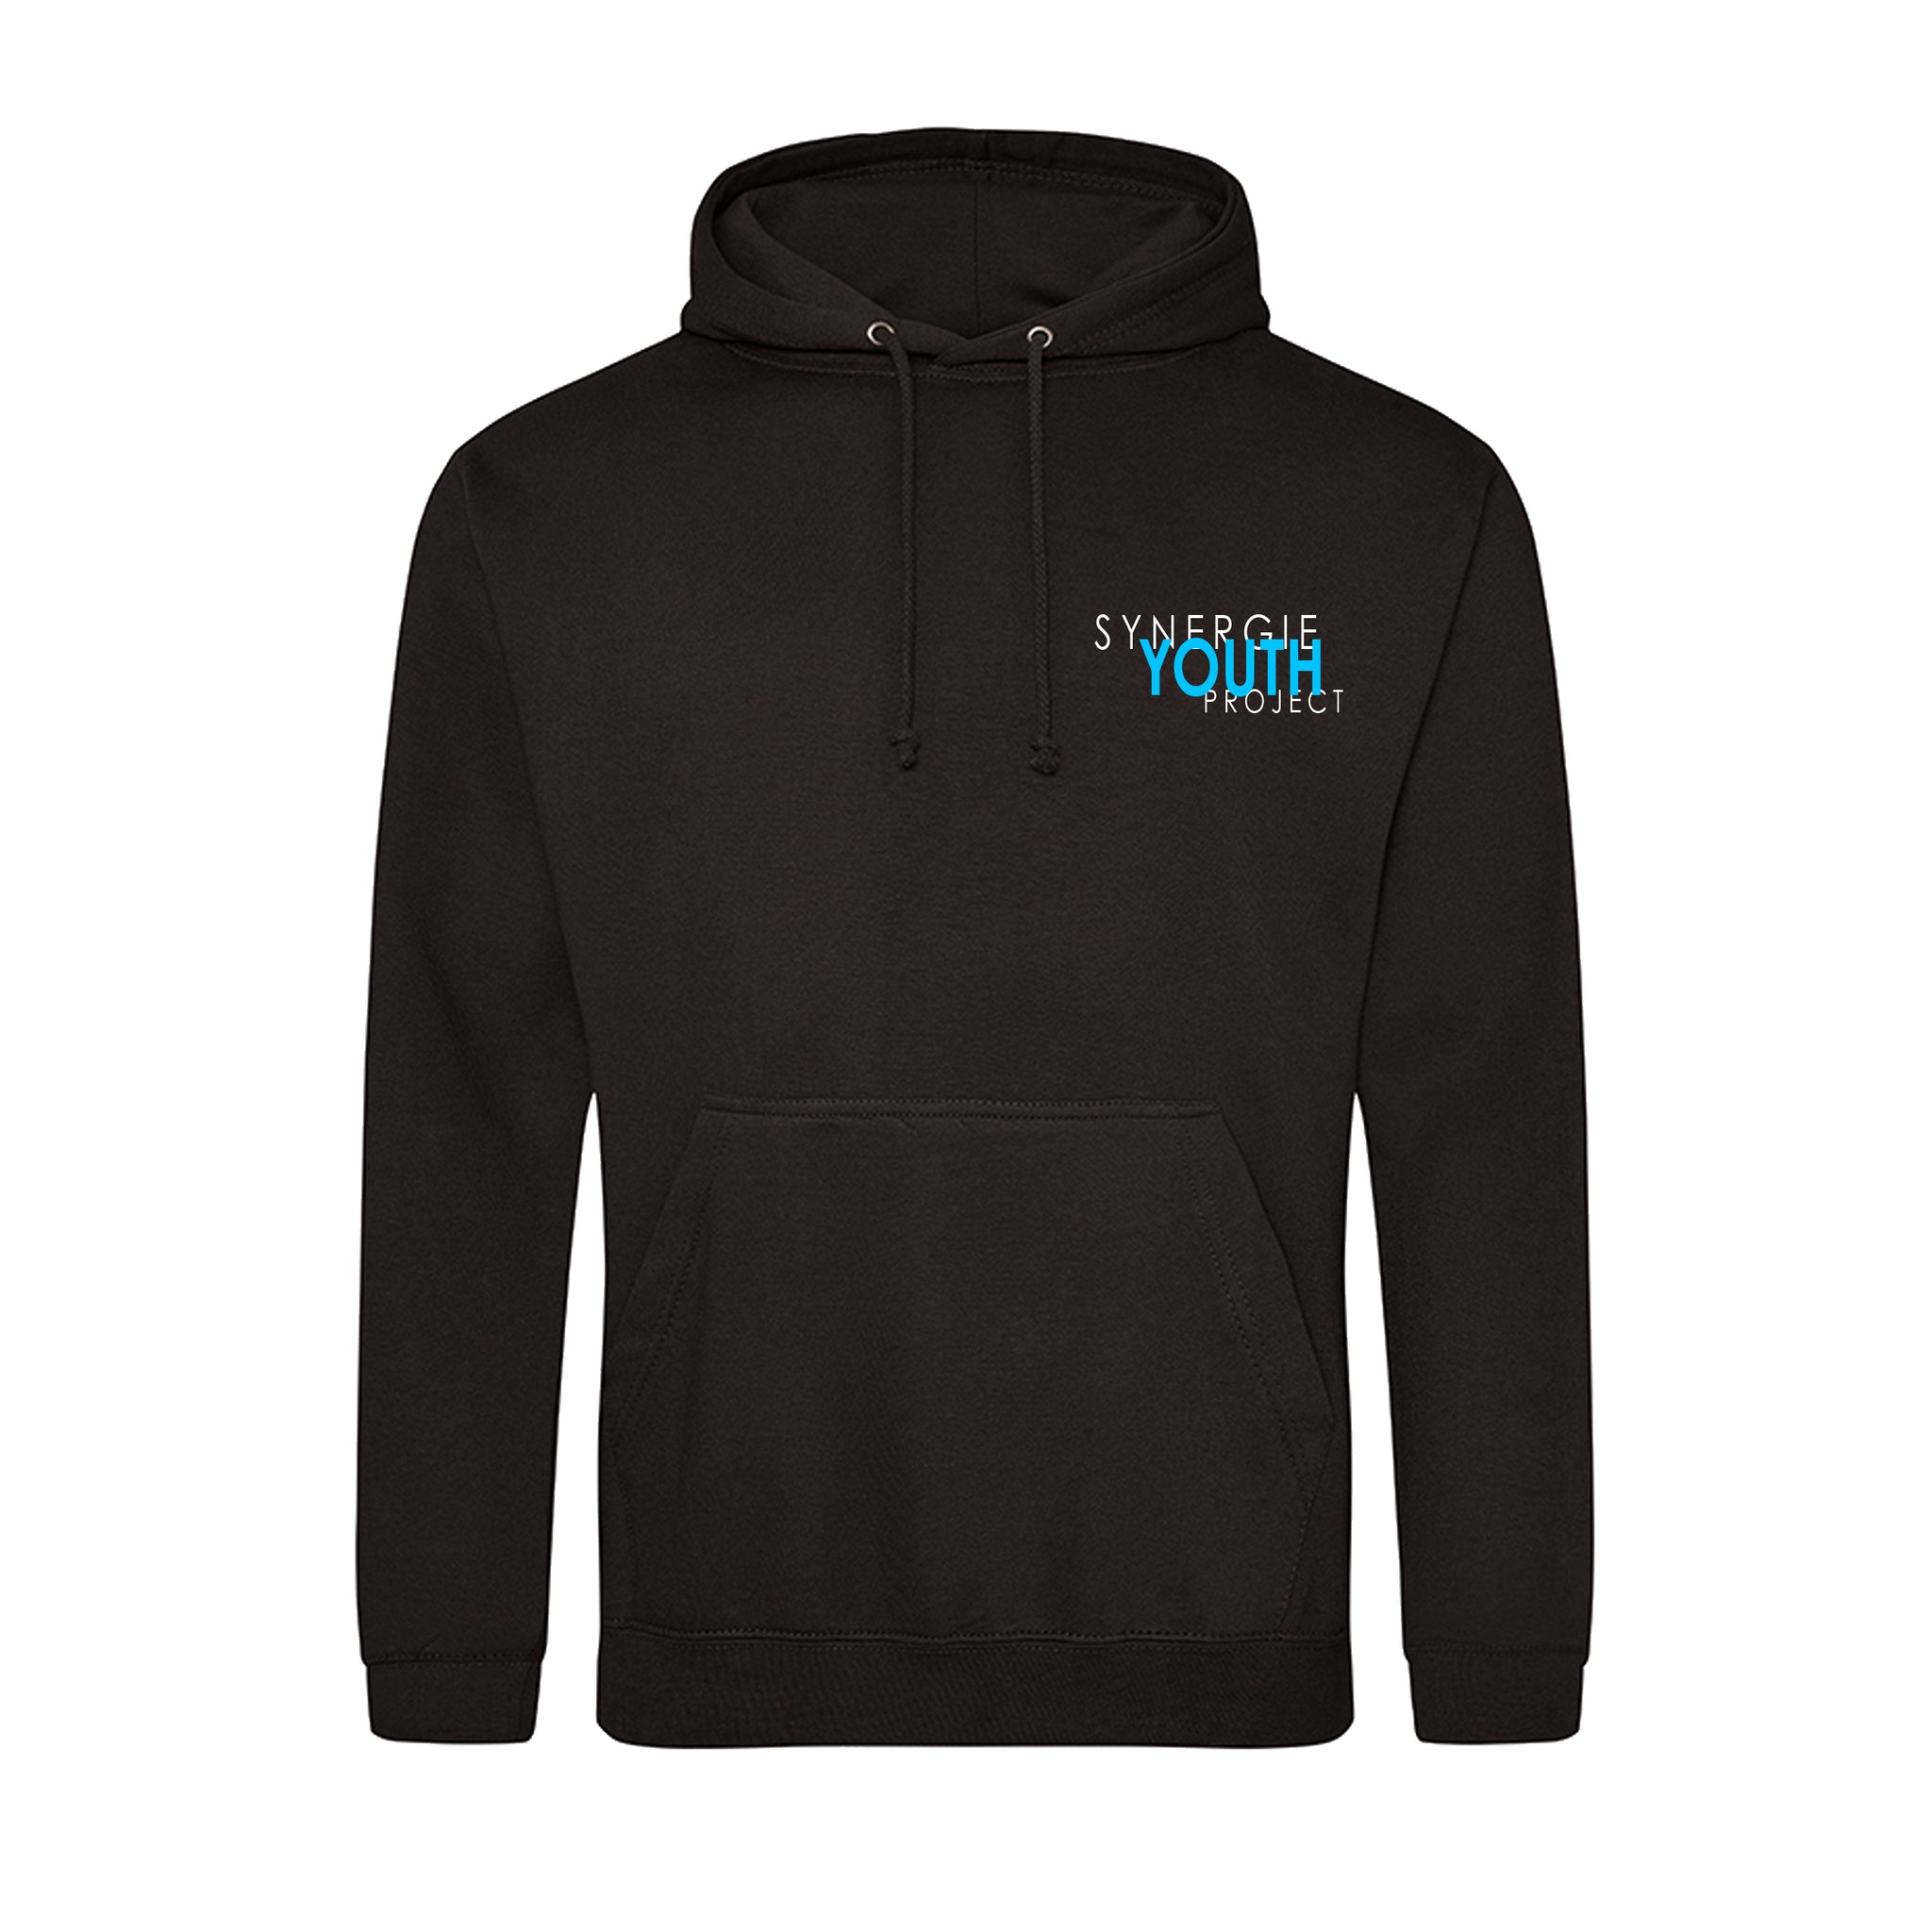 Synergie Youth Project Hoodie Standard Logo Design